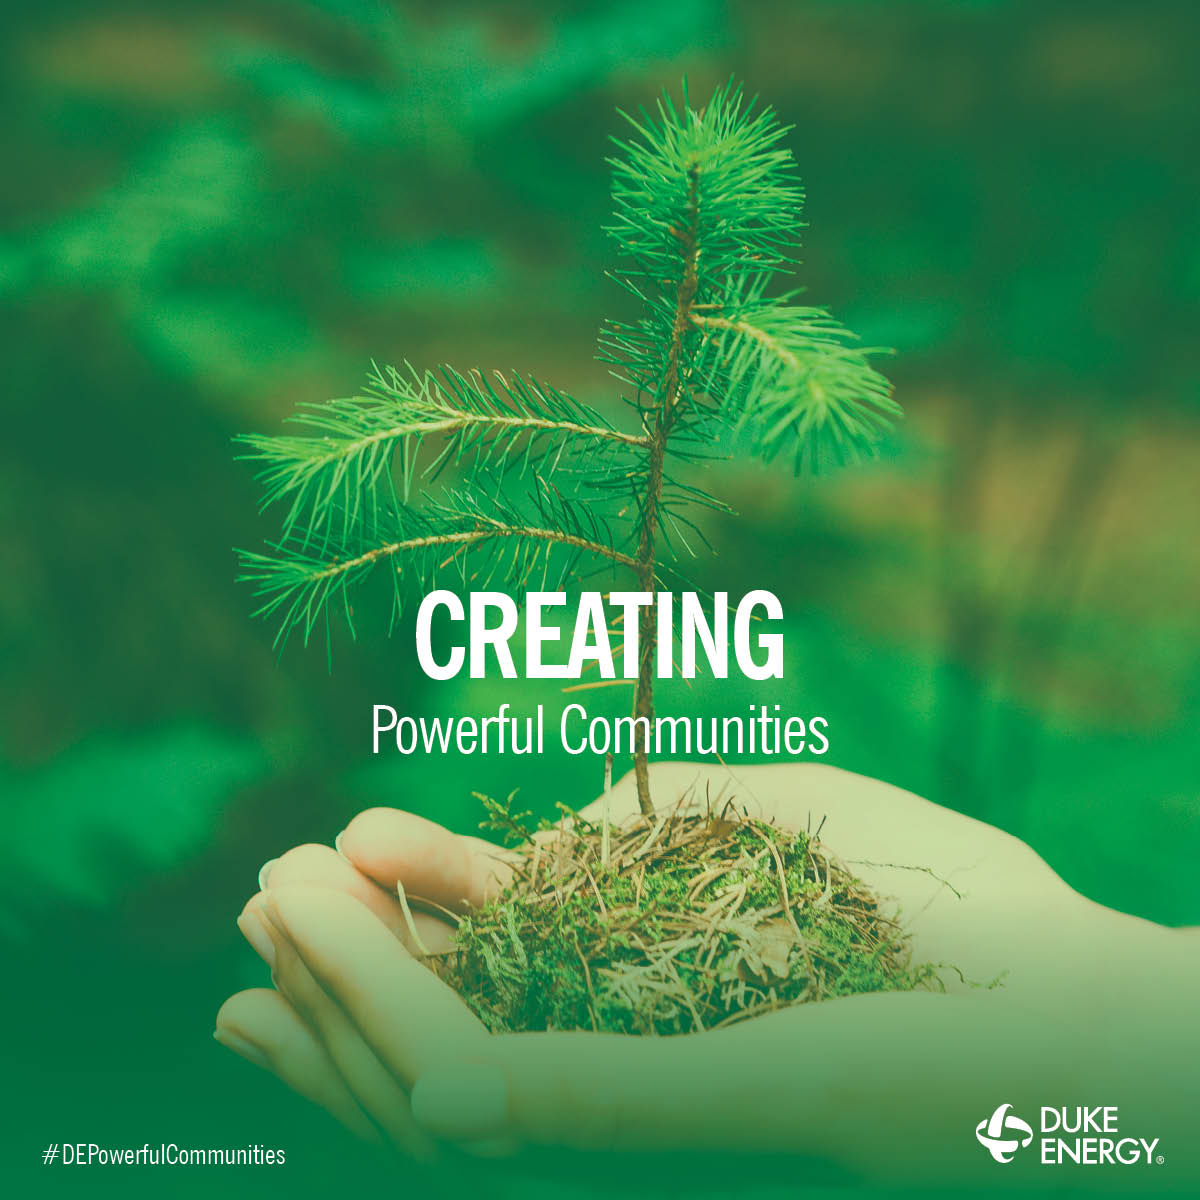 Facebook -- DE Powerful Communities Nature